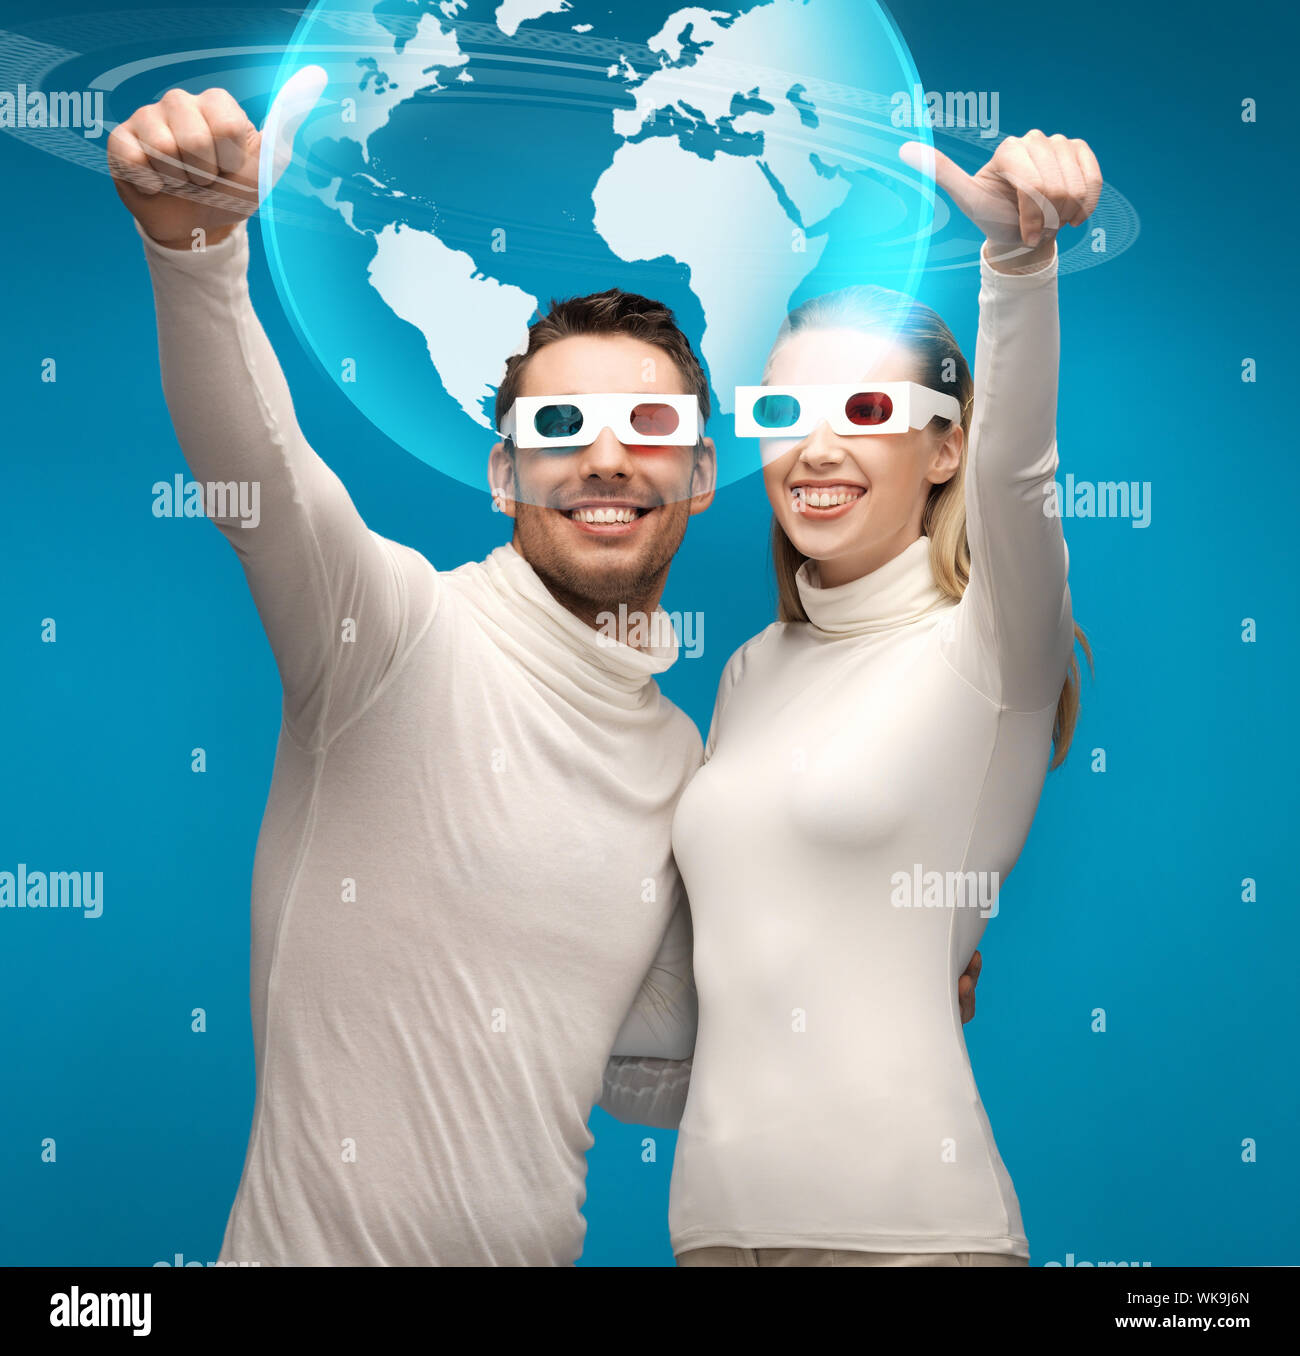 woman and man in 3d glasses looking at globe model Stock Photo